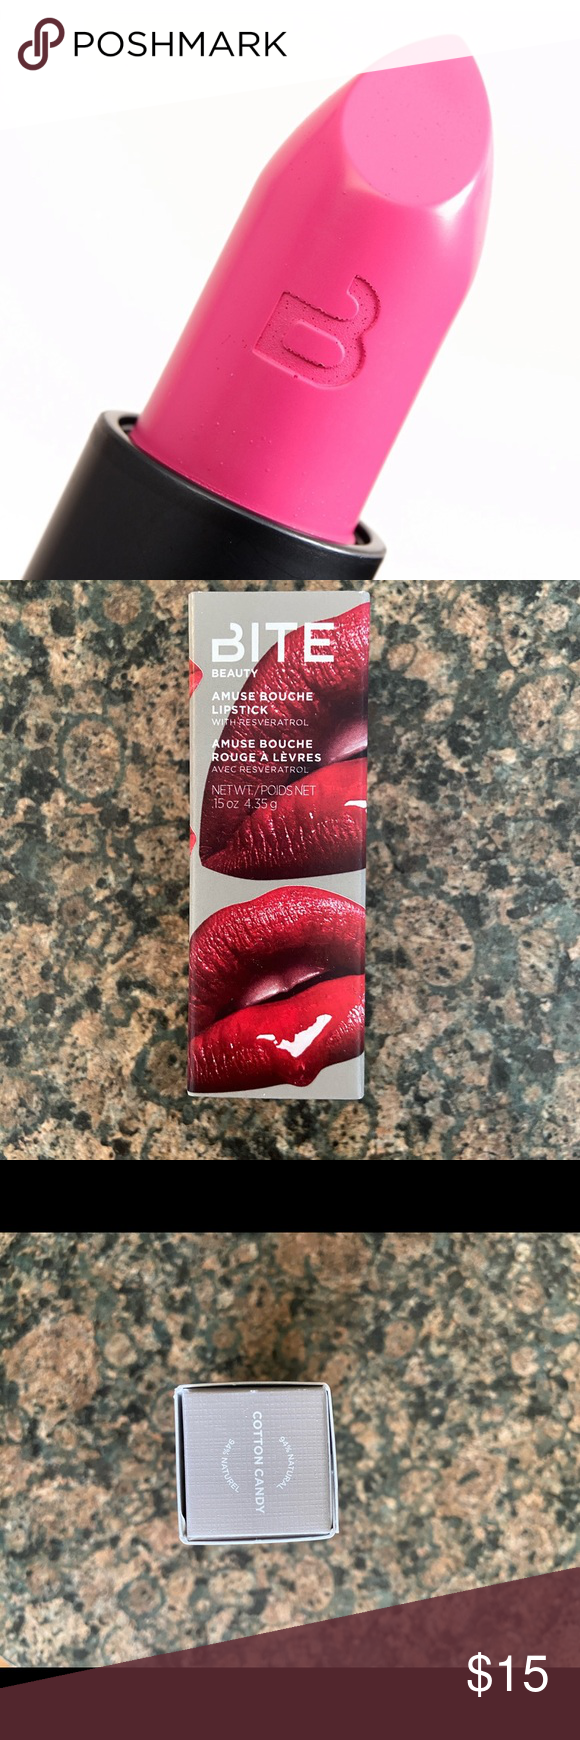 Photo of NIB Bite Beauty Cotton Candy Amuse Bouche Lipstick Fabulous color from an incred…